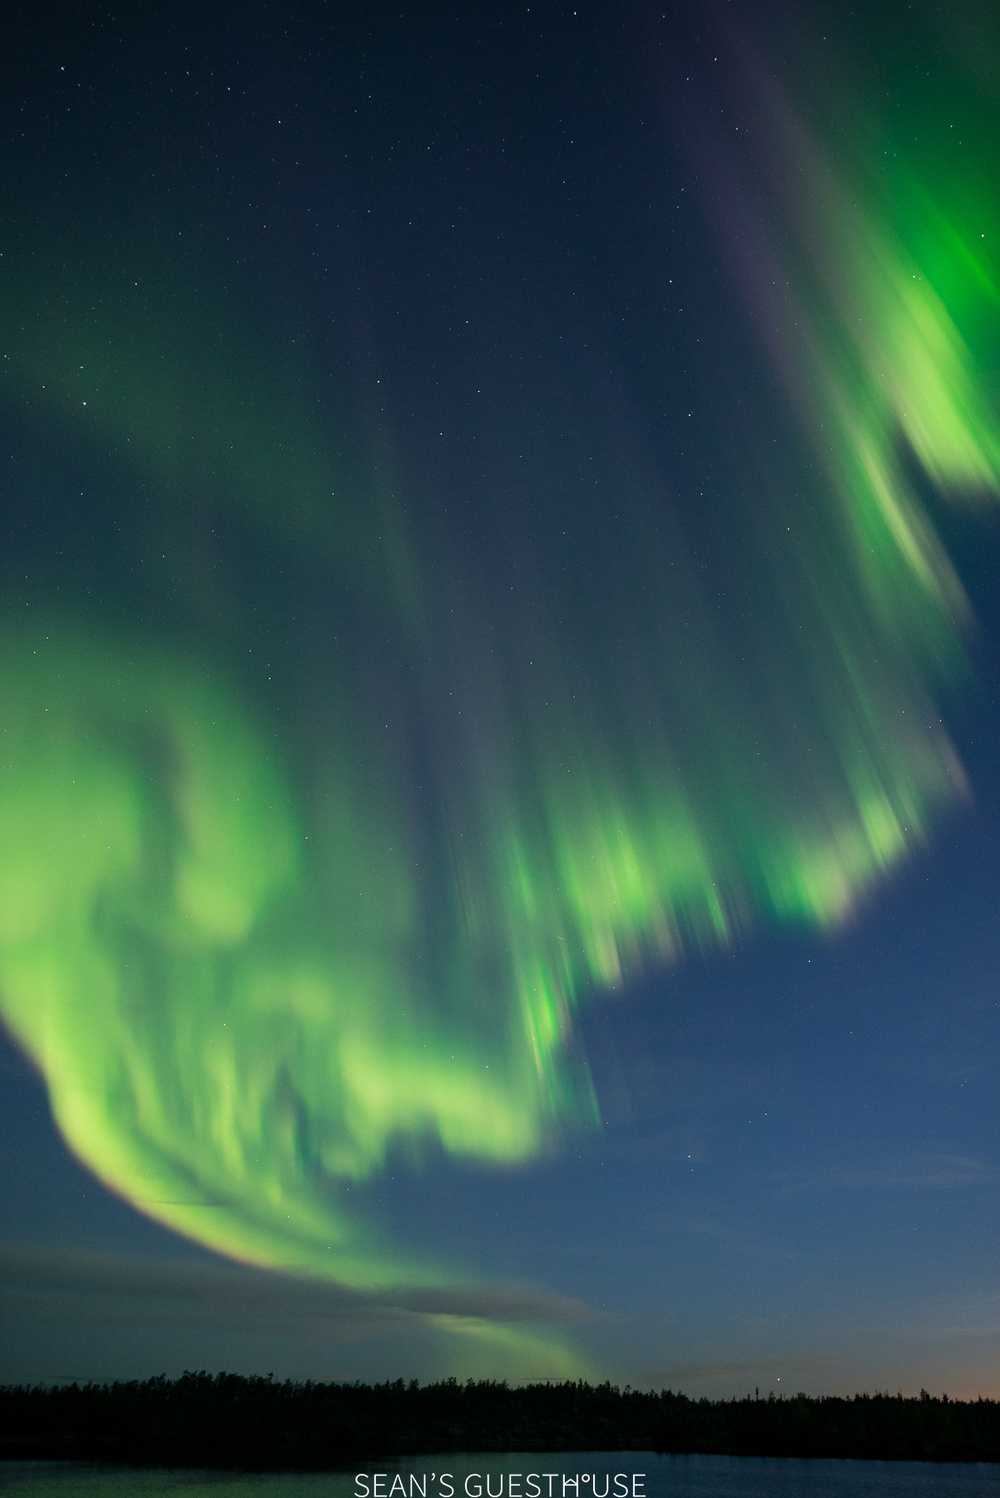 Sean's Guesthouse - Yellowknife Northern Lights and Perseid Meteor Shower - 10.jpg